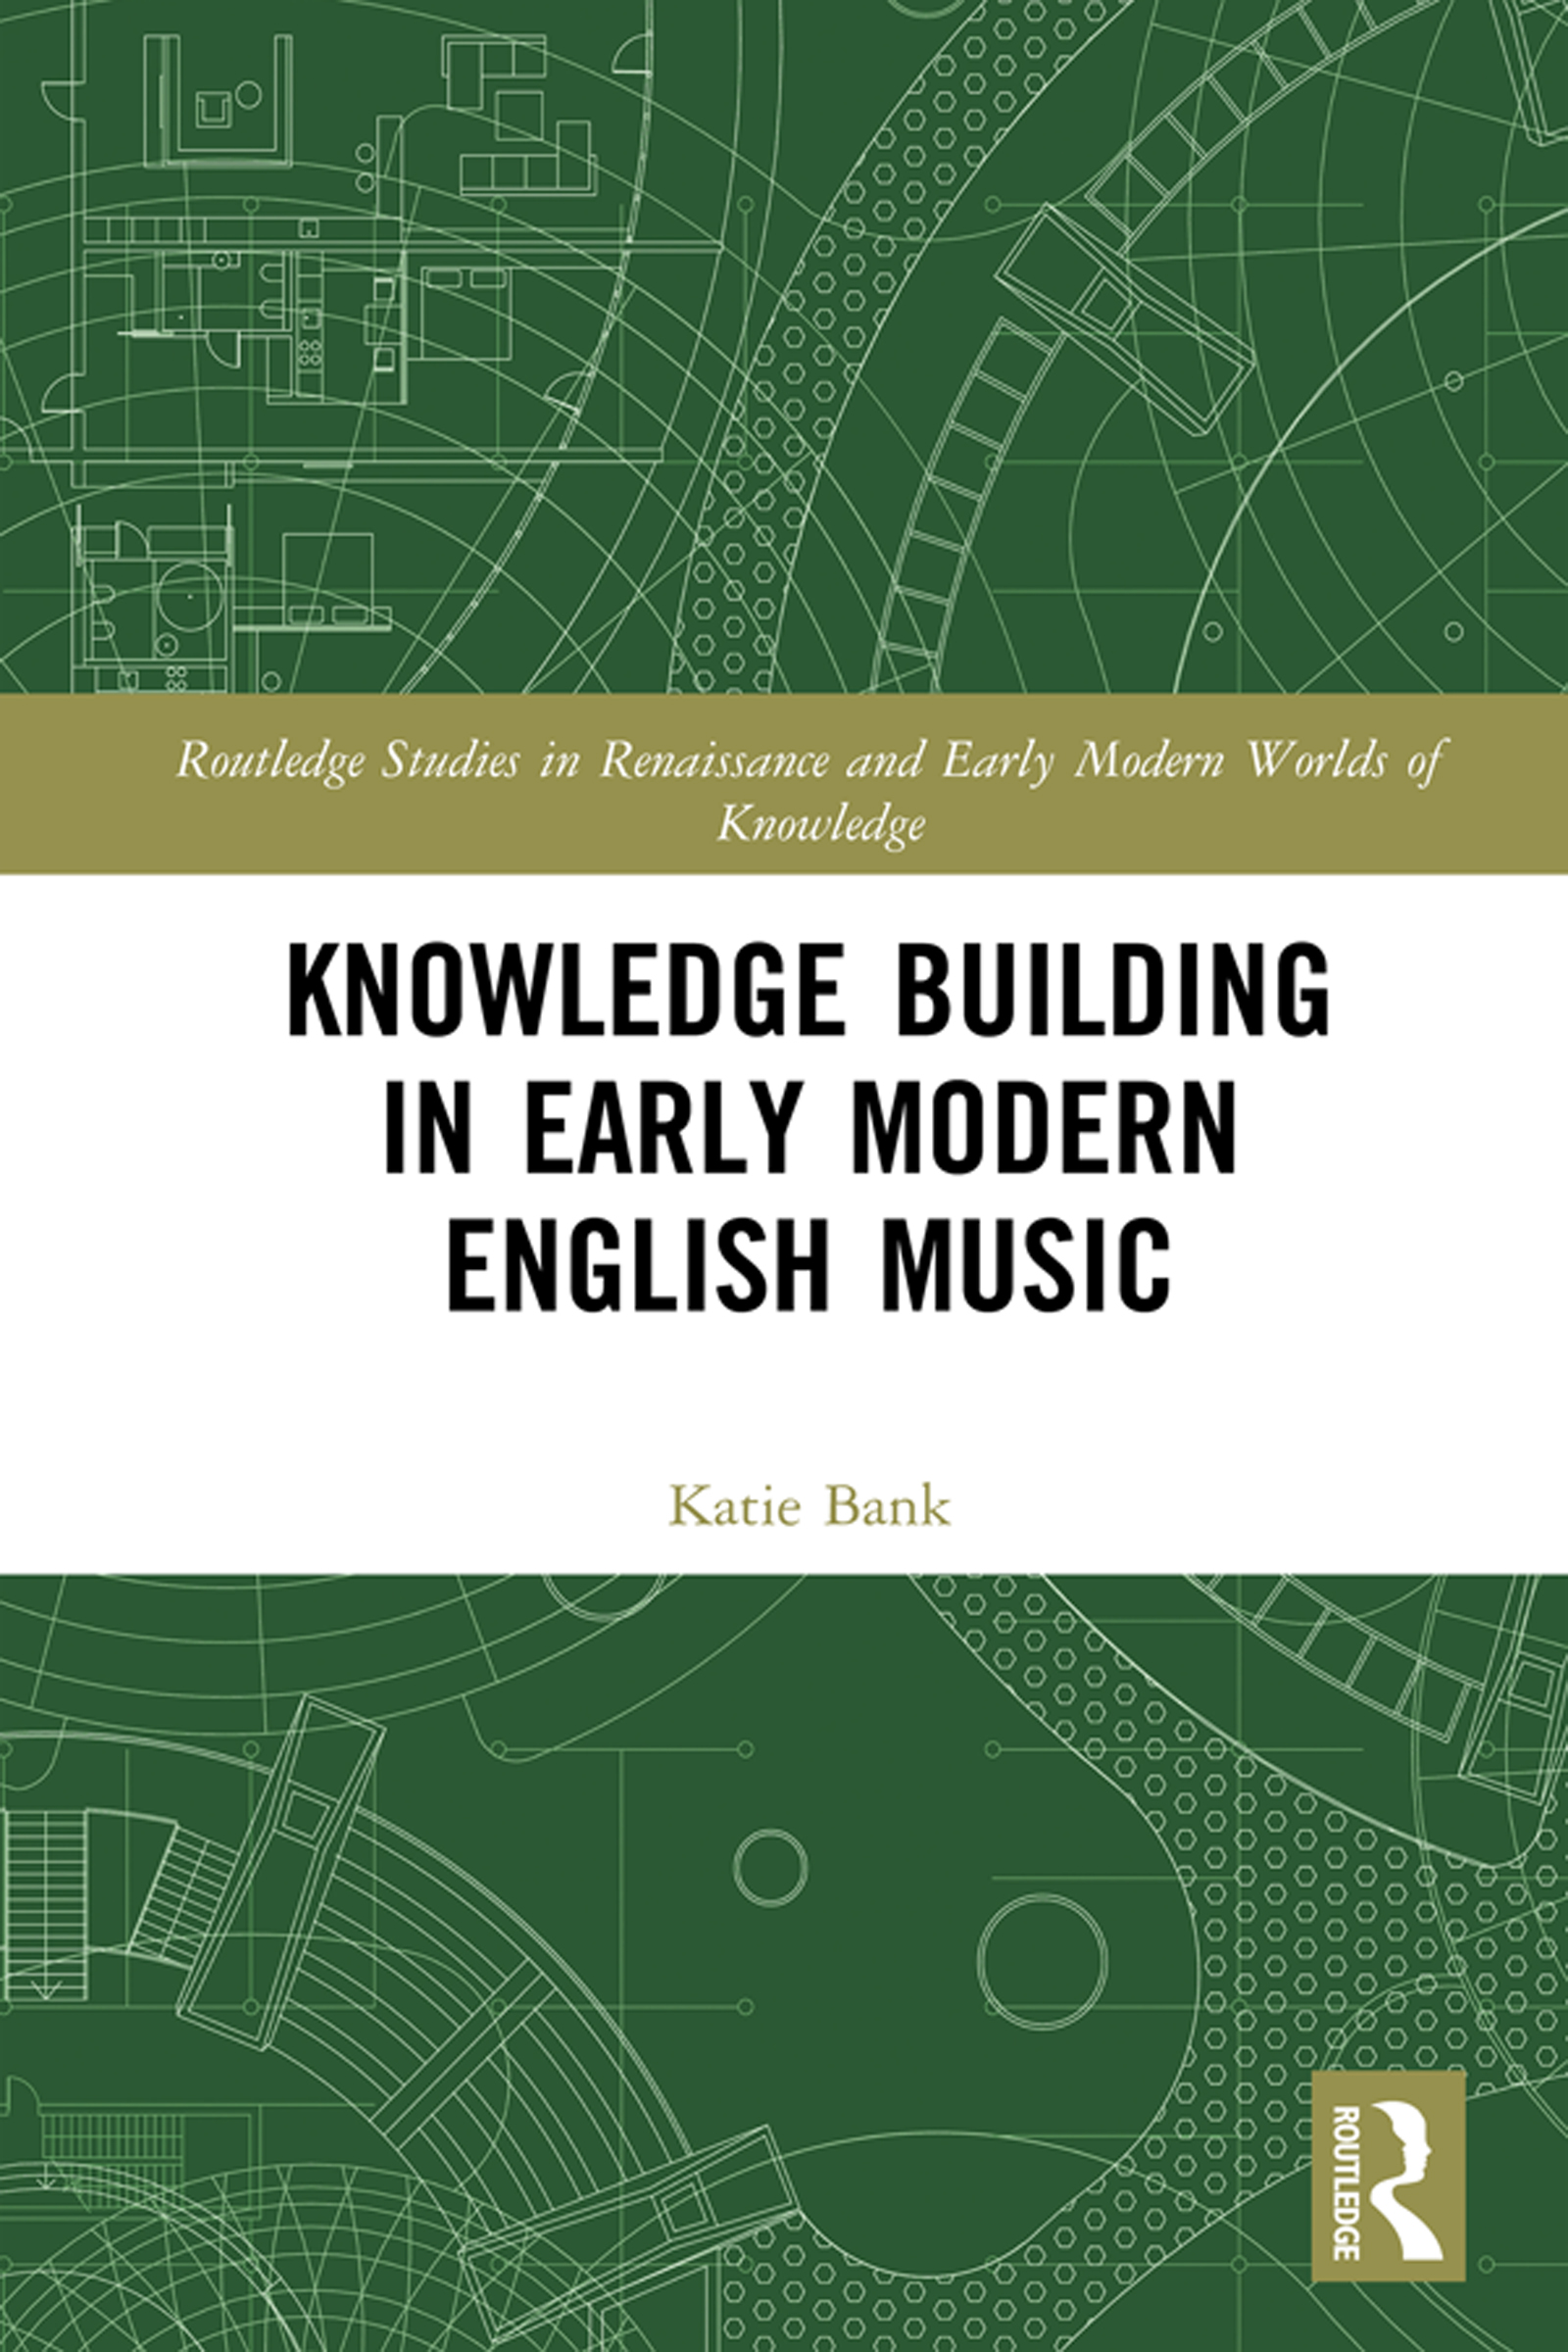 Knowledge Building in Early Modern English Music